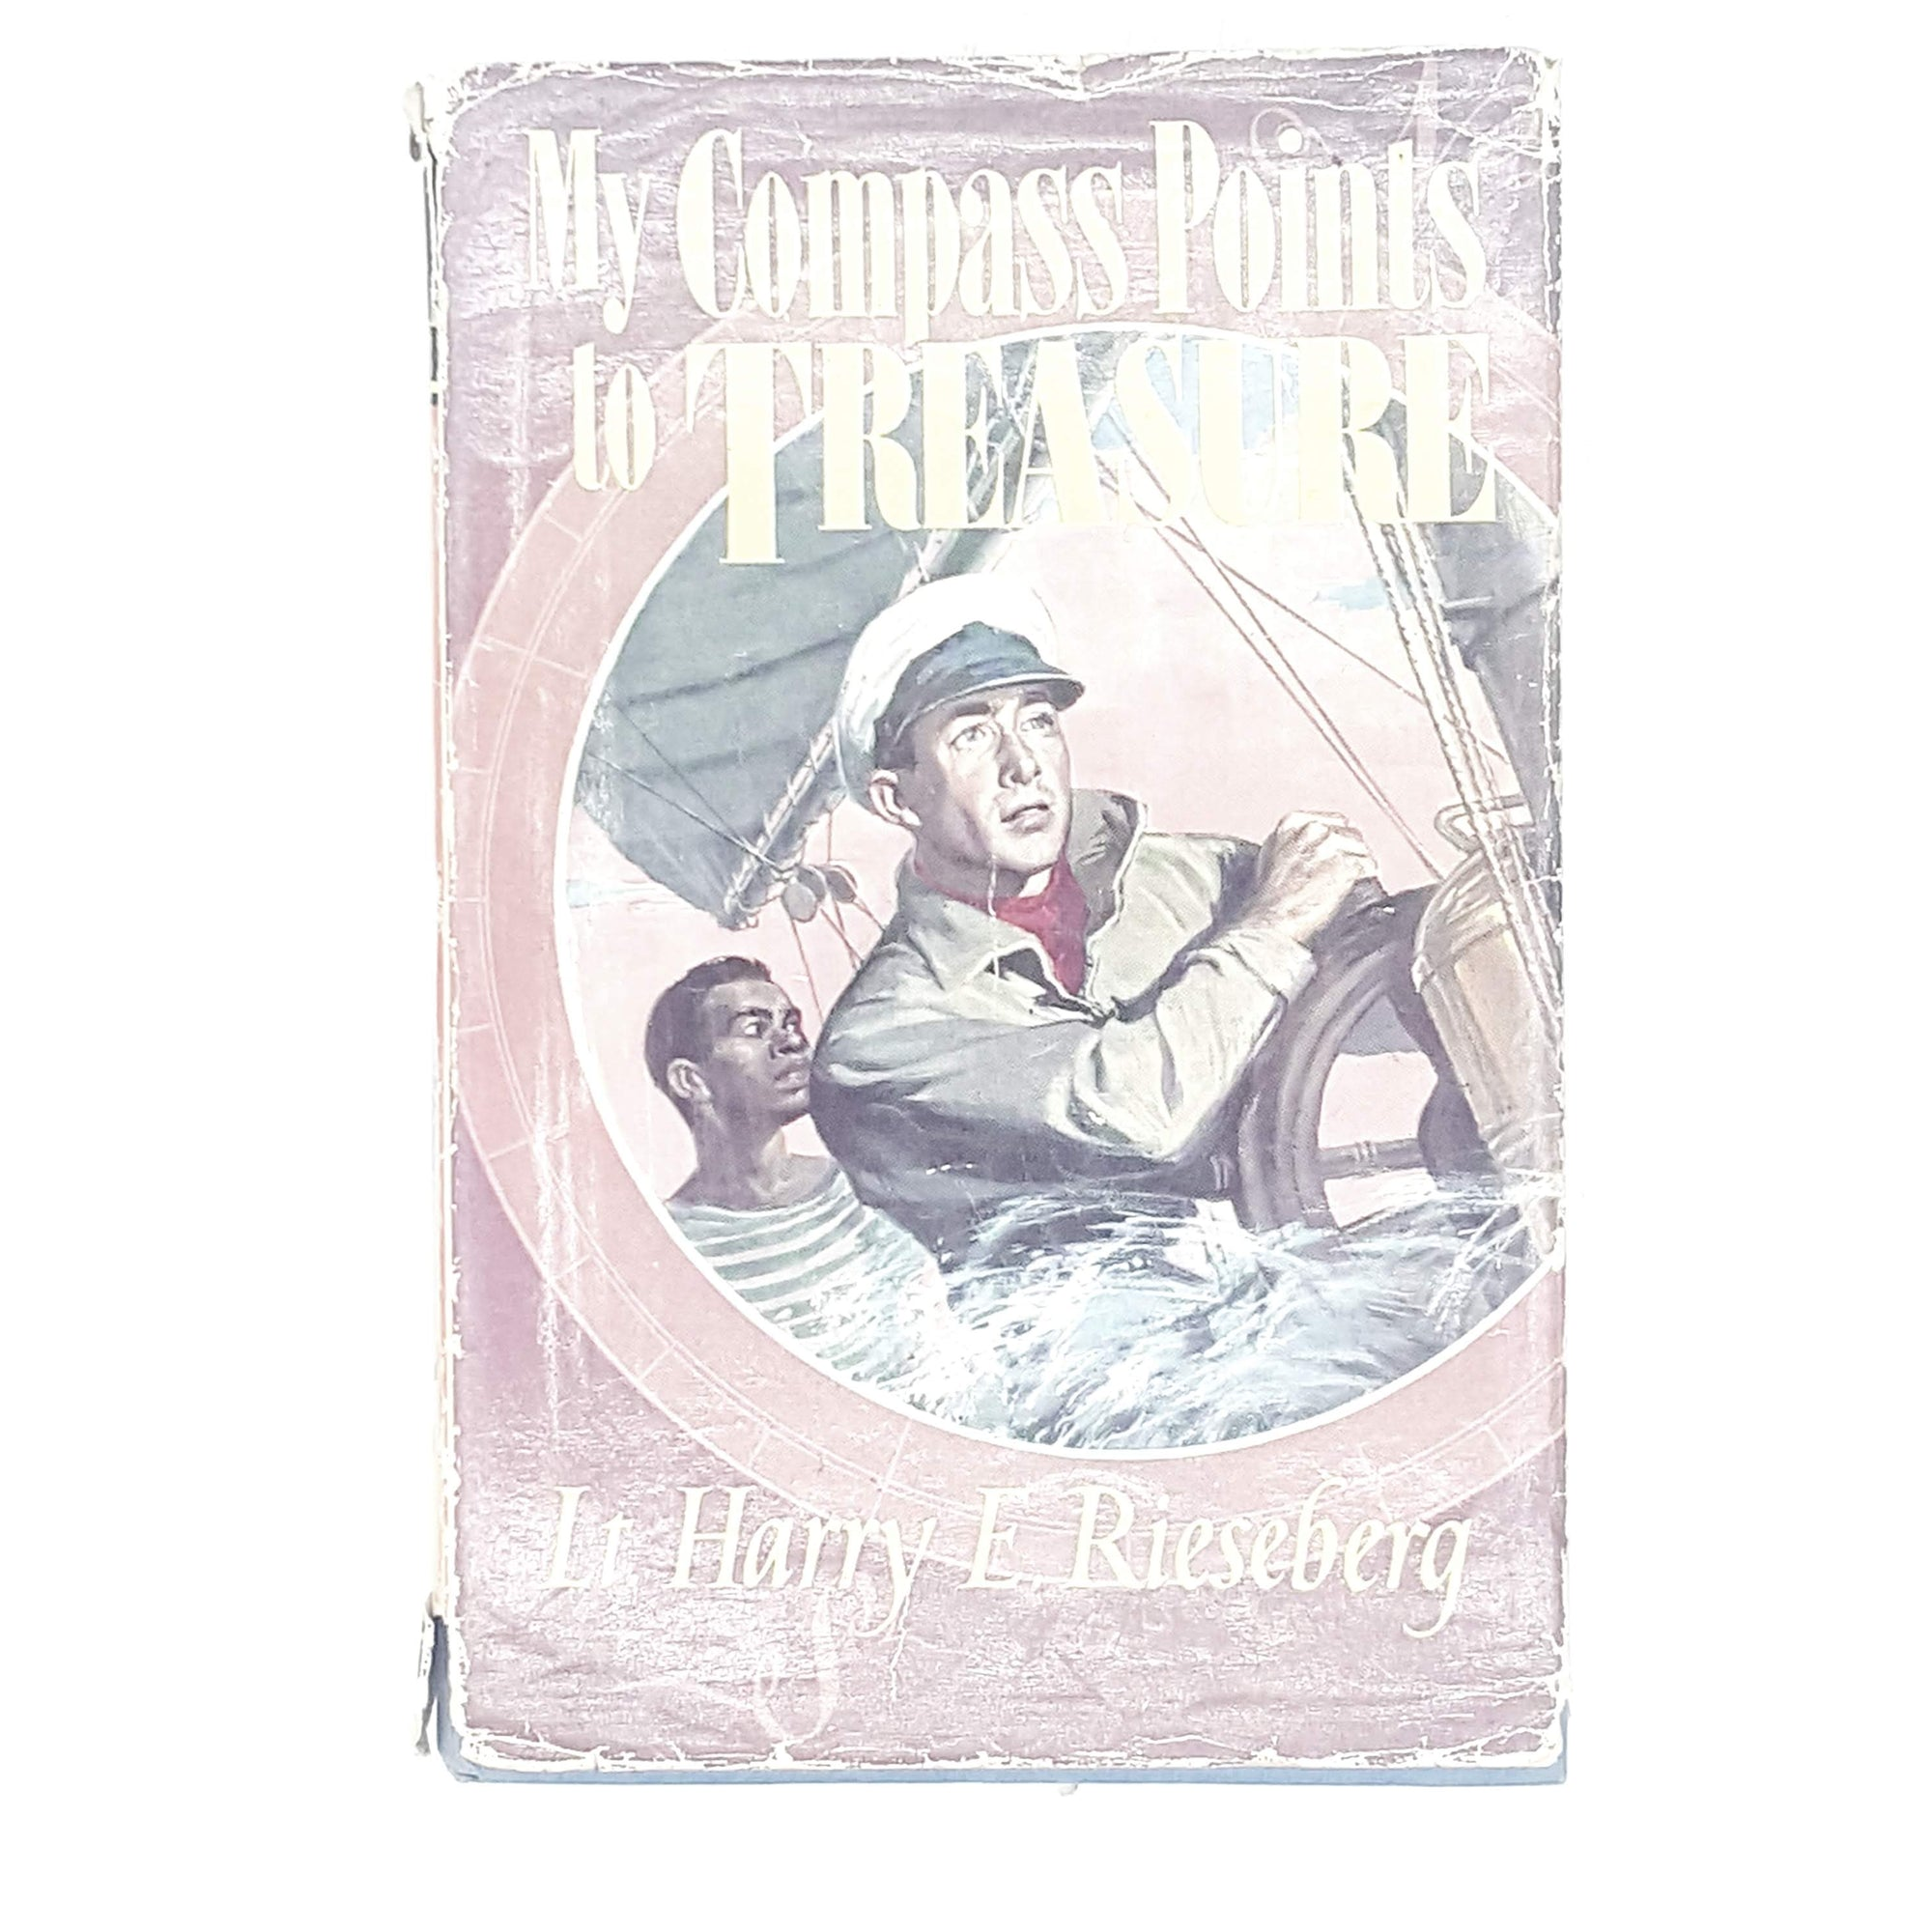 My Compass Points to Treasure by Lt. Harry E. Rieseberg 1961